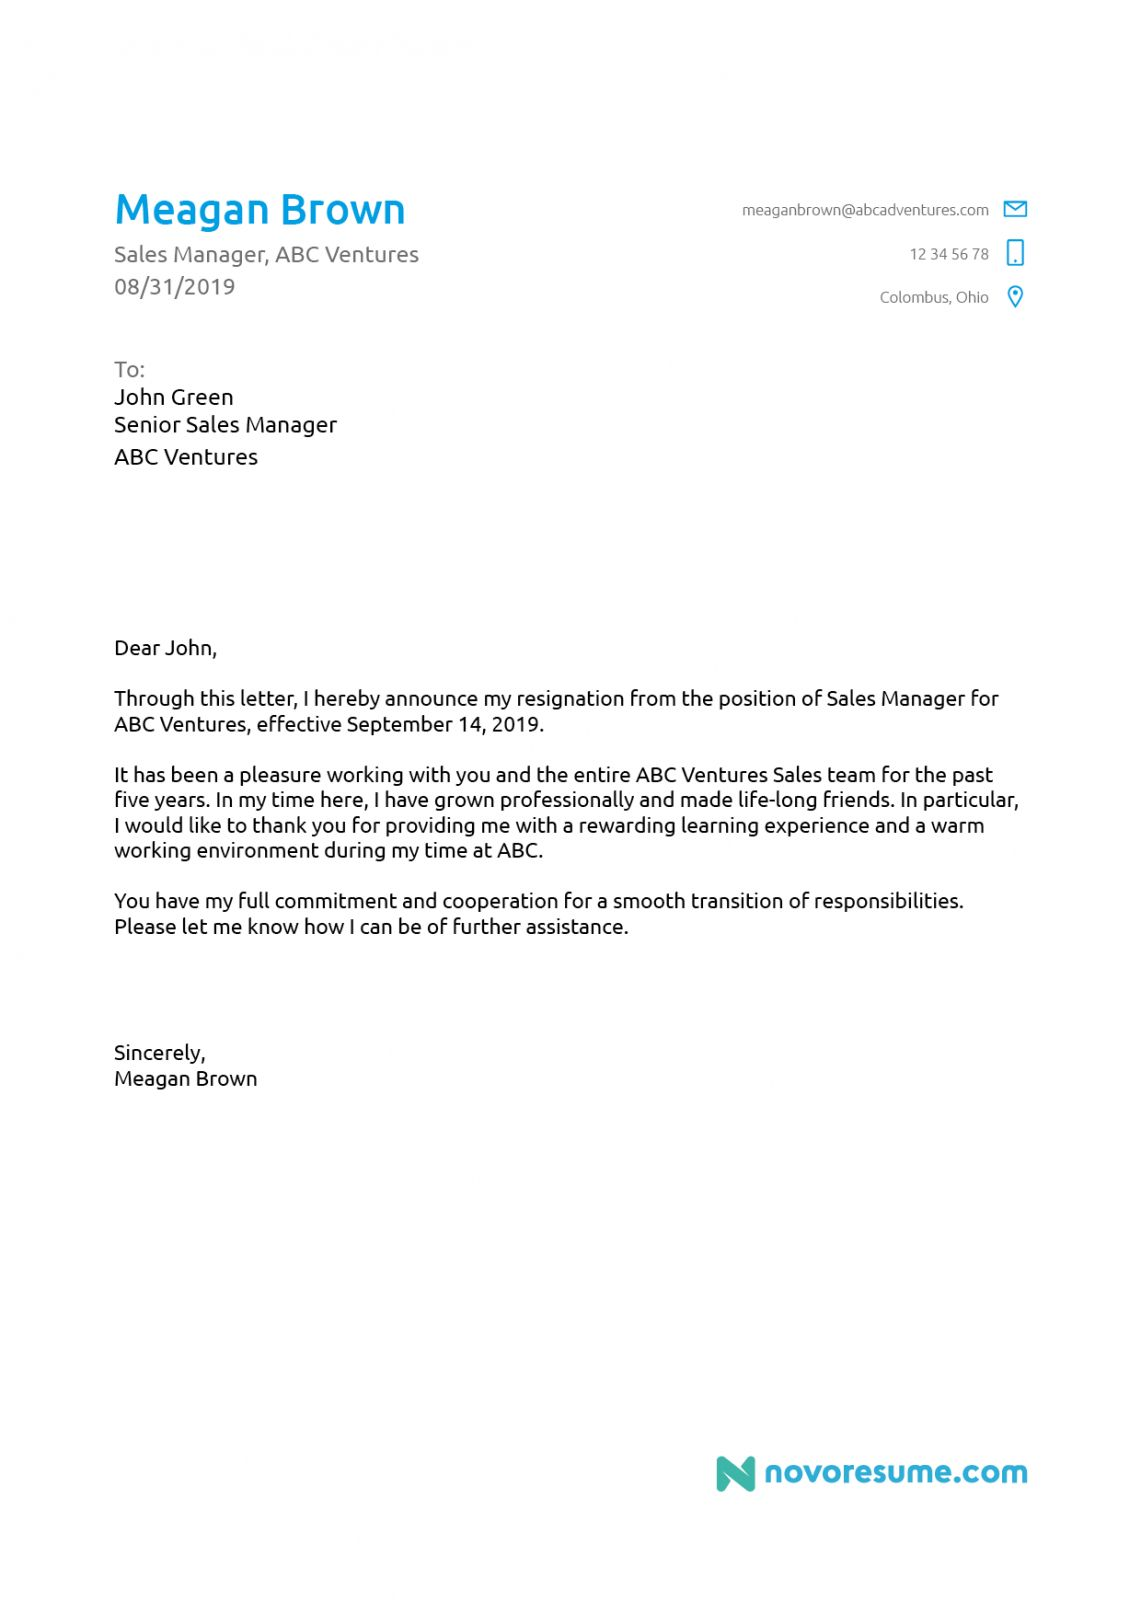 Get Our Example Of Resignation Letter Requesting Severance Pay For Free Resignation Template Resignation Letter Resignation Letter Format